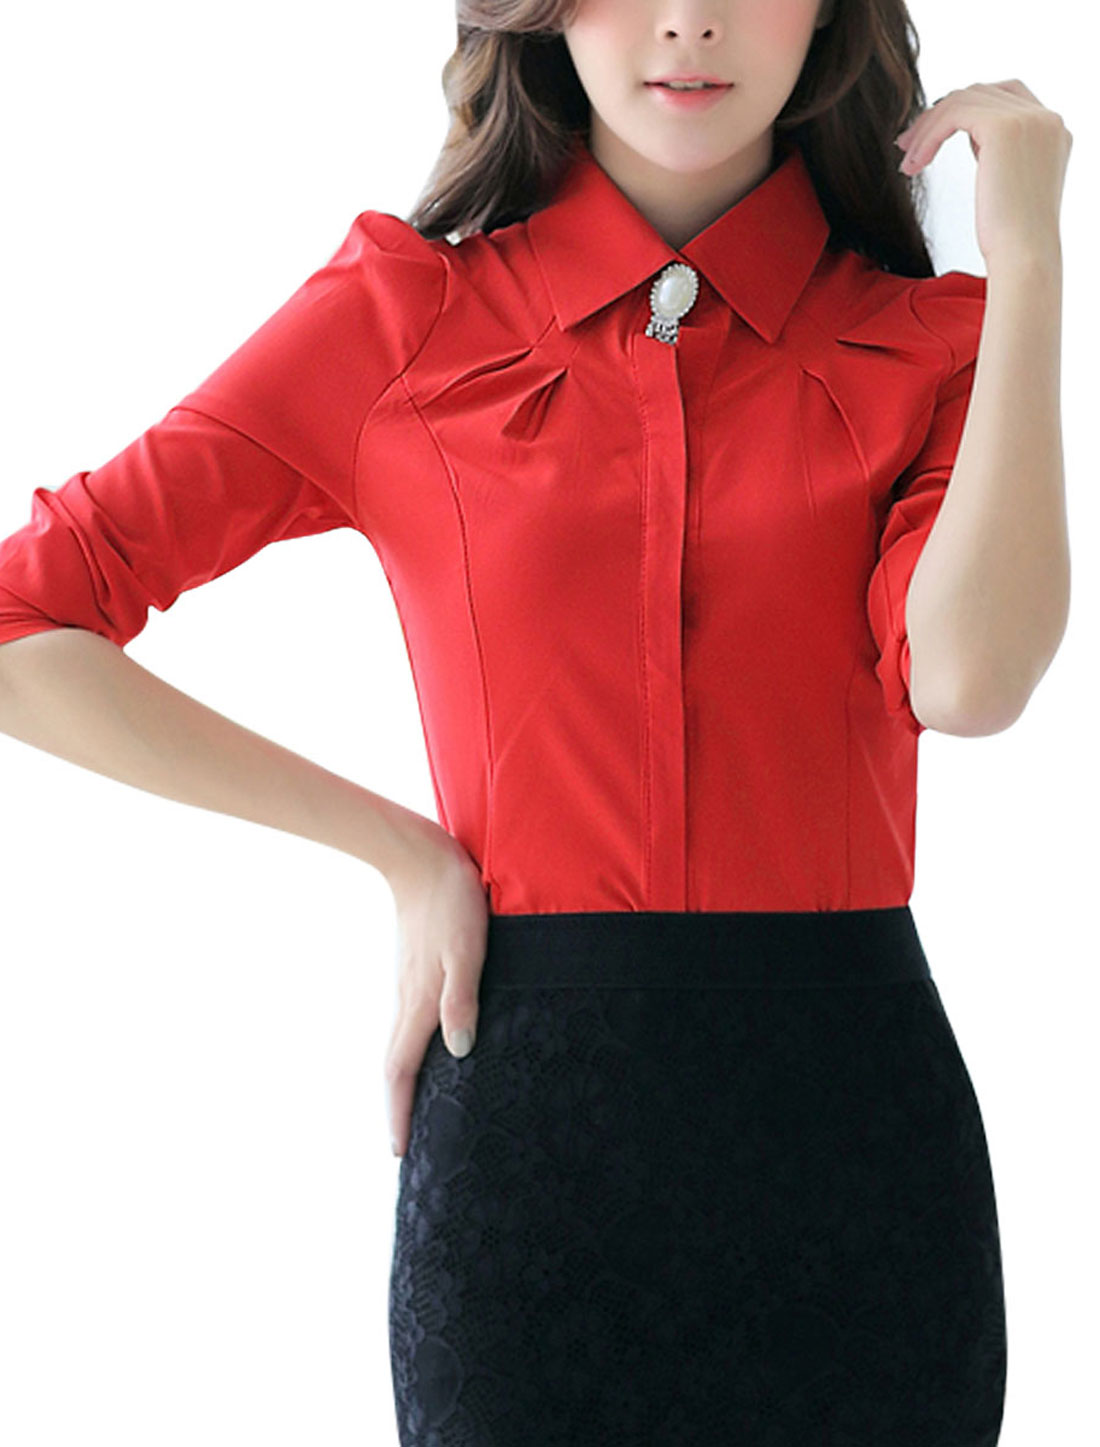 Puff Sleeves Point Collar Button Up Red Shirt for Women M